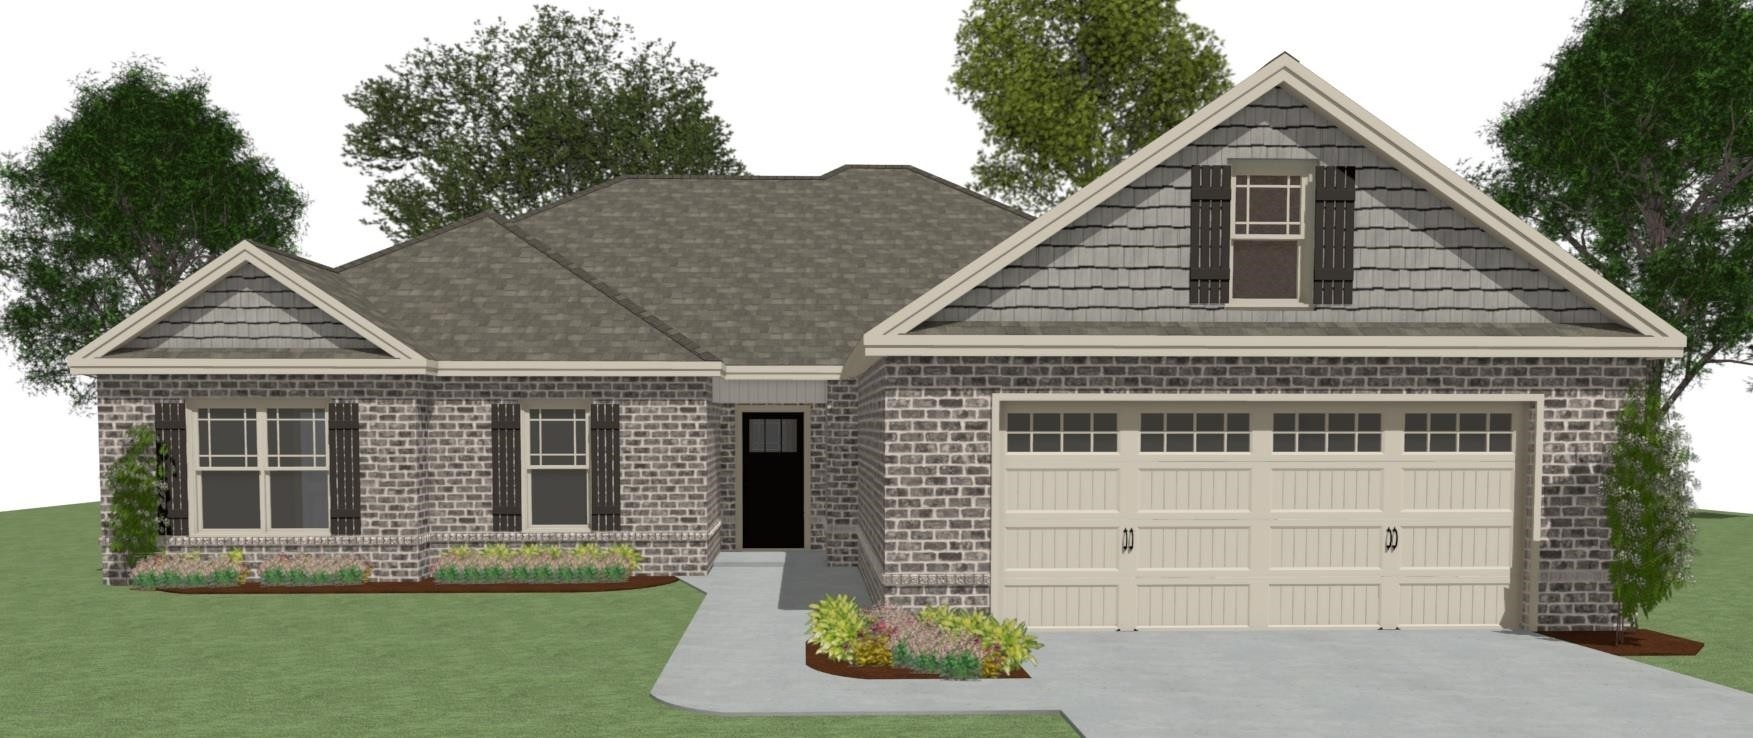 1-Story House In Warner Robins